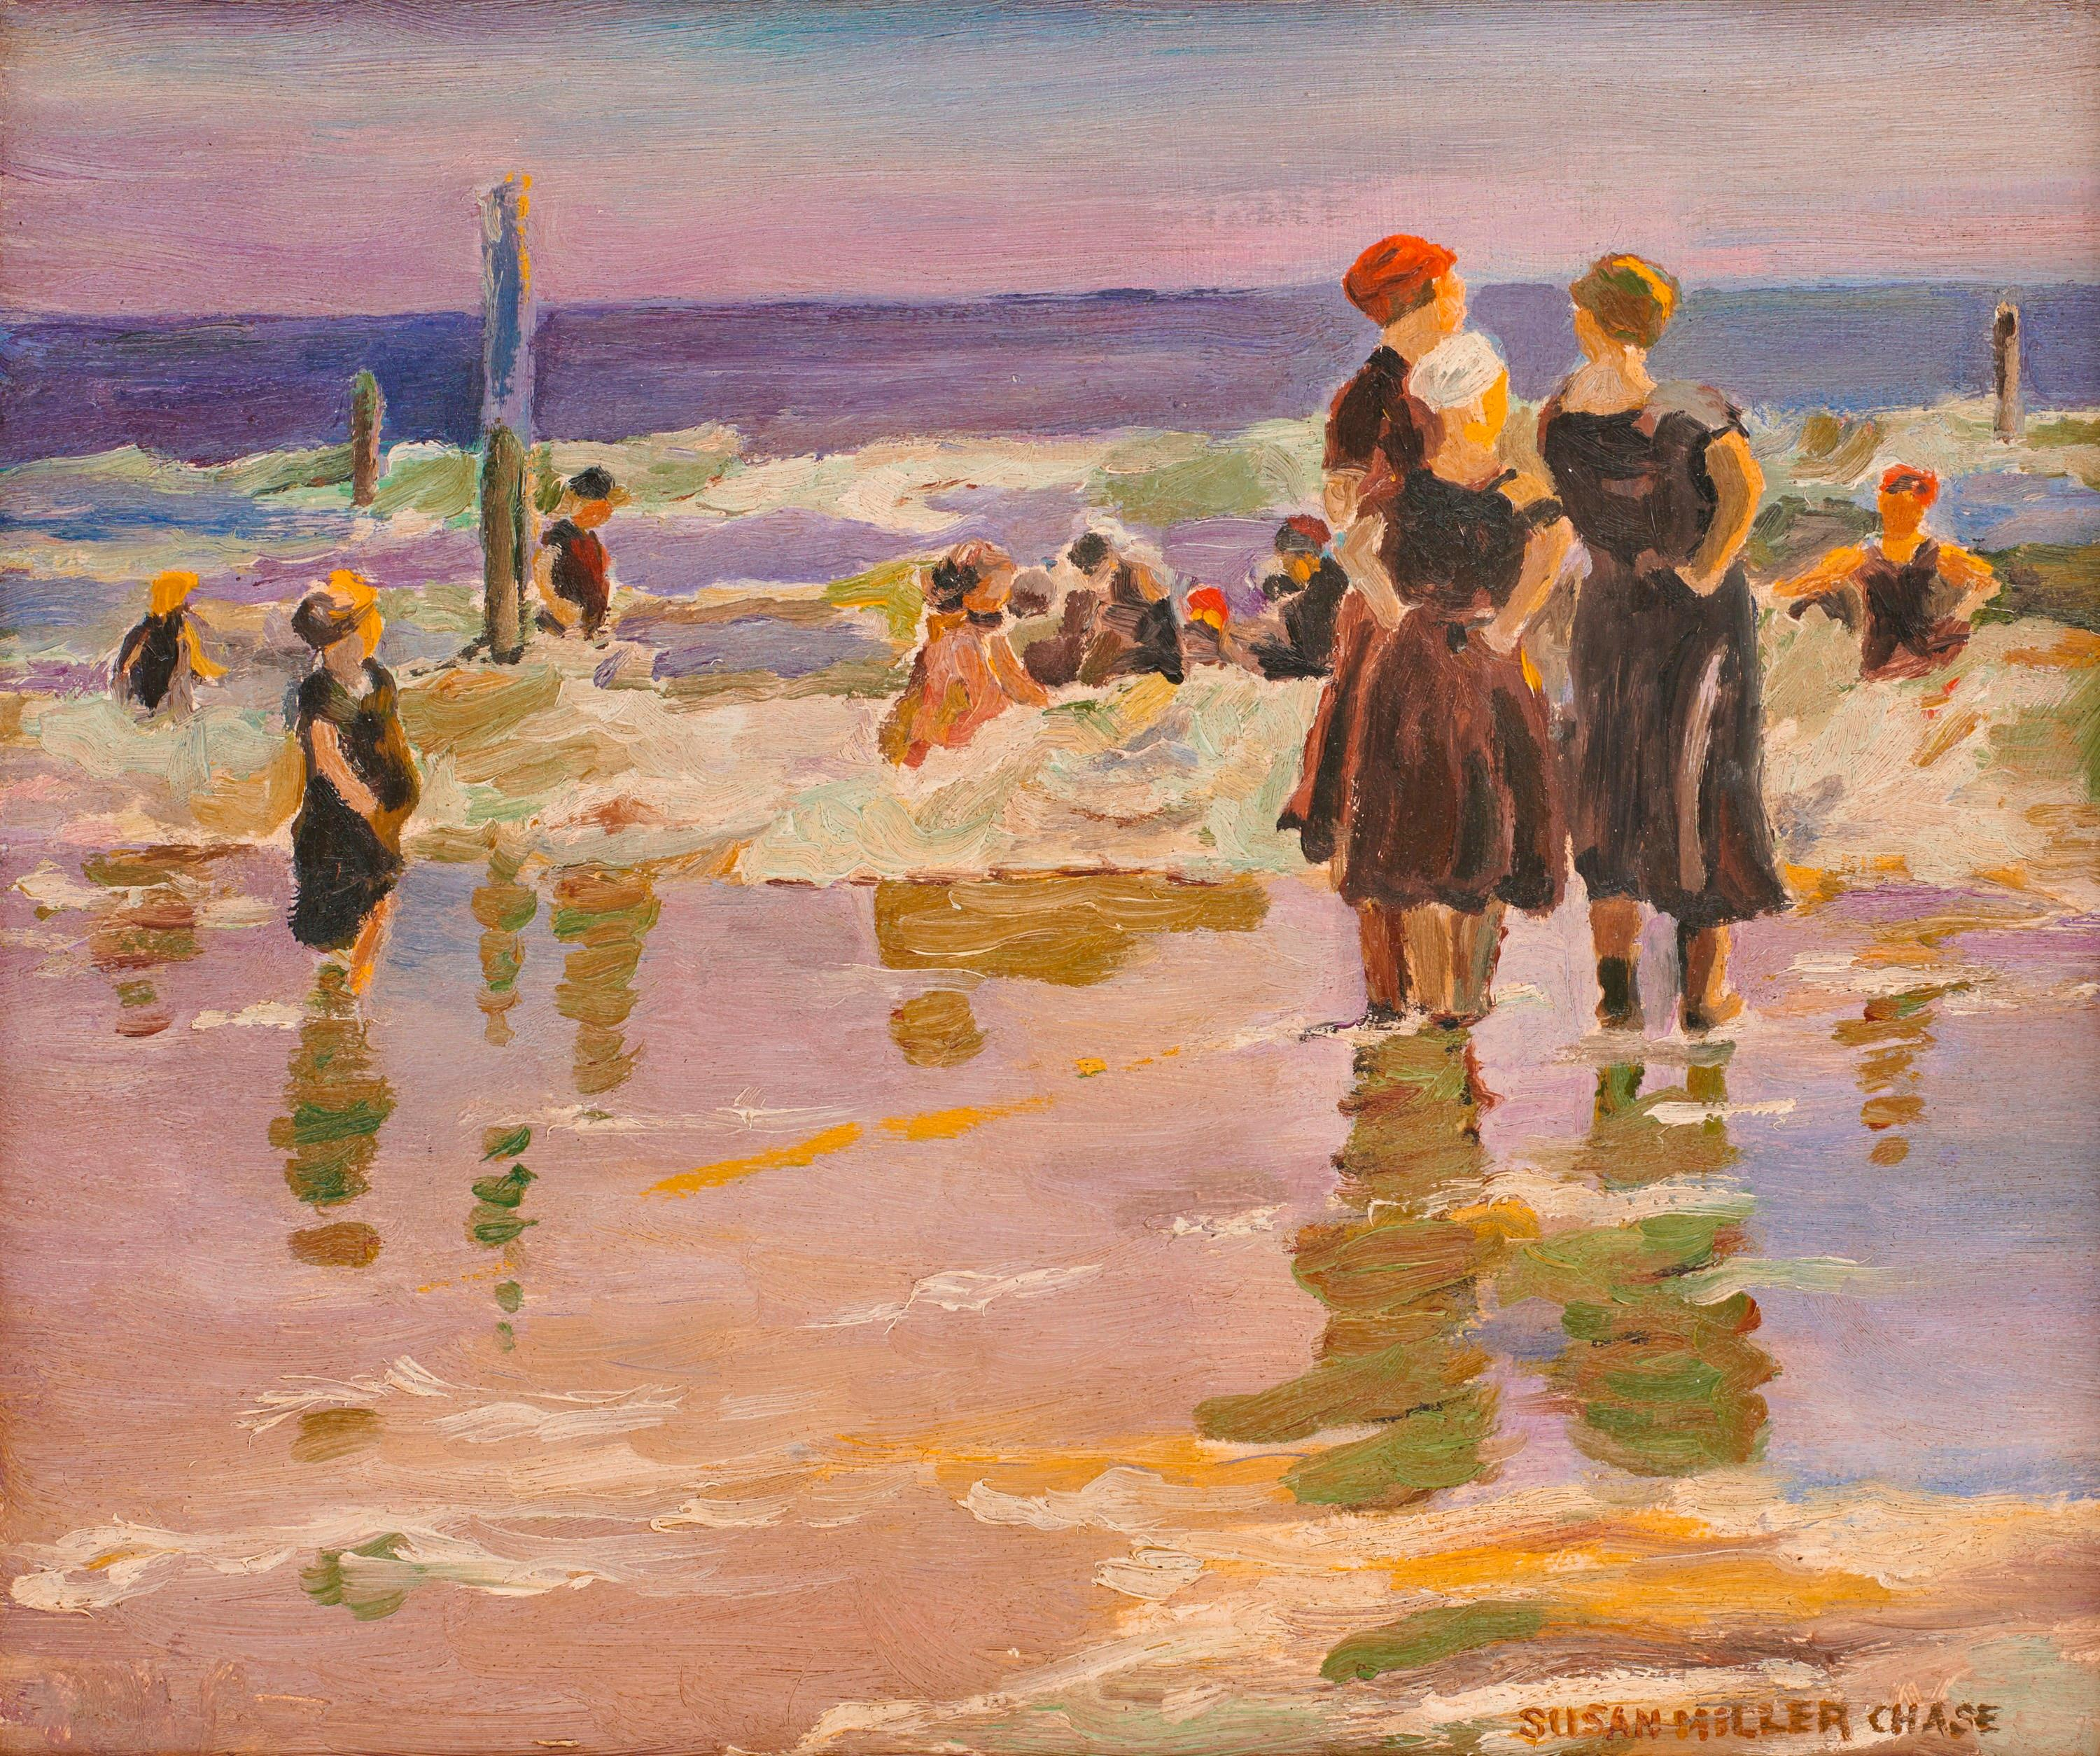 SUSAN MILLER CHASE, (American 1868-1948), Coney Island, oil on board, 10 x 12 in., frame: 16 3/8 x 17 1/4 in.